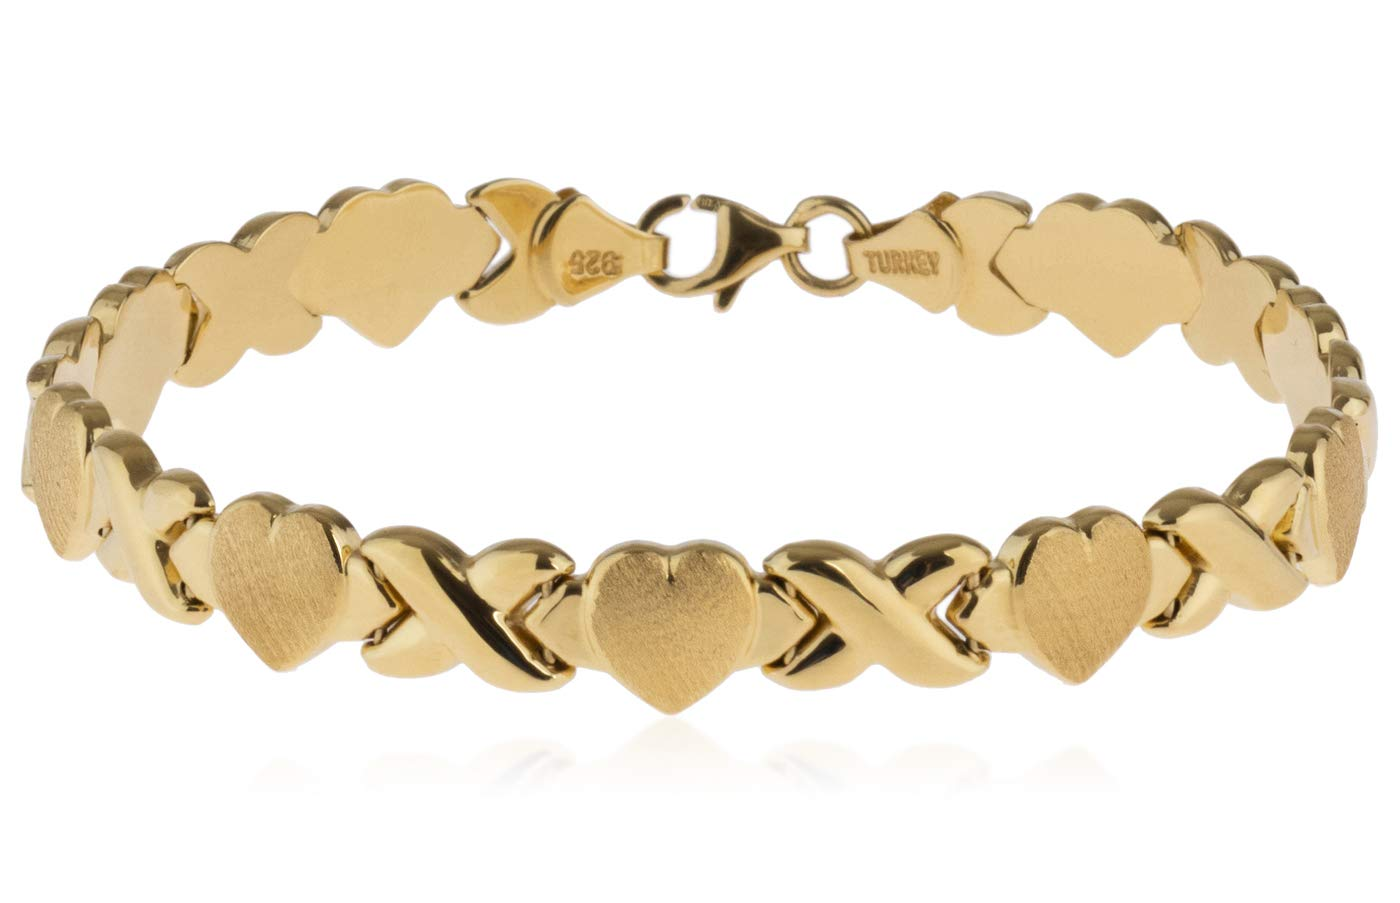 SilverLuxe 18kt Gold Plated 925 Sterling Silver Hugs and Kisses XOXO Bracelet